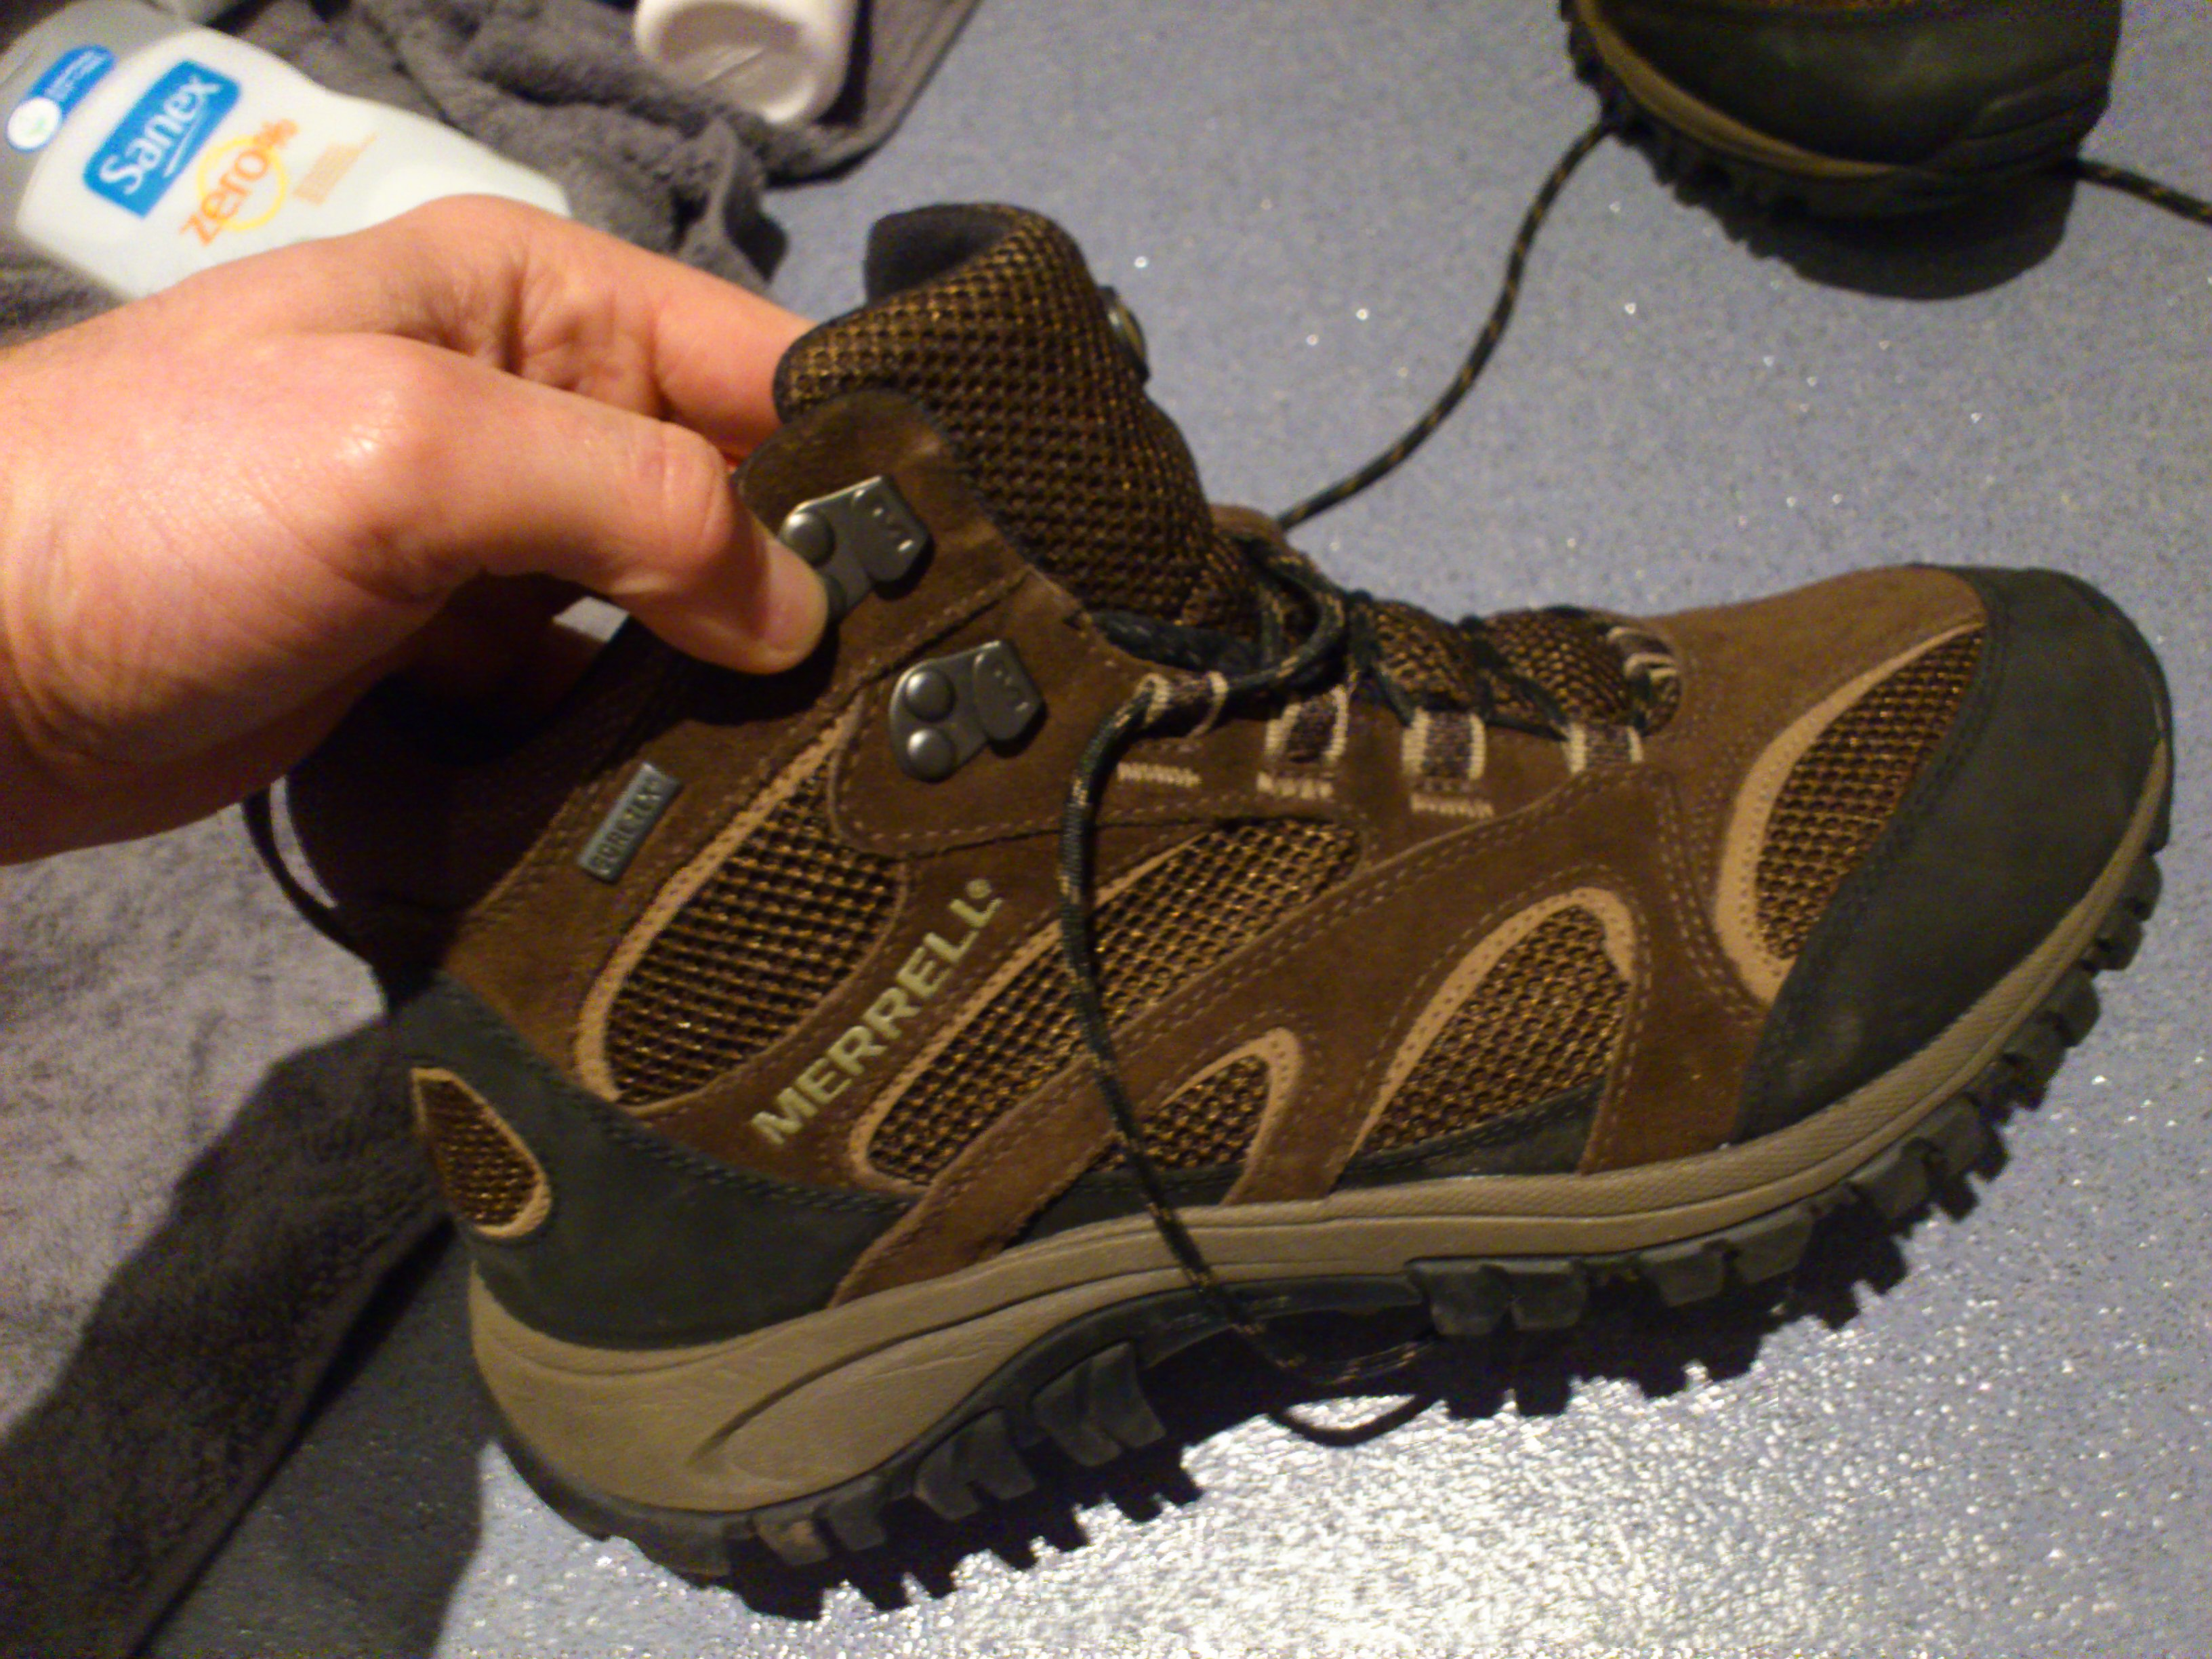 Merrell Mid GTX boot - Adventure 52 magazine